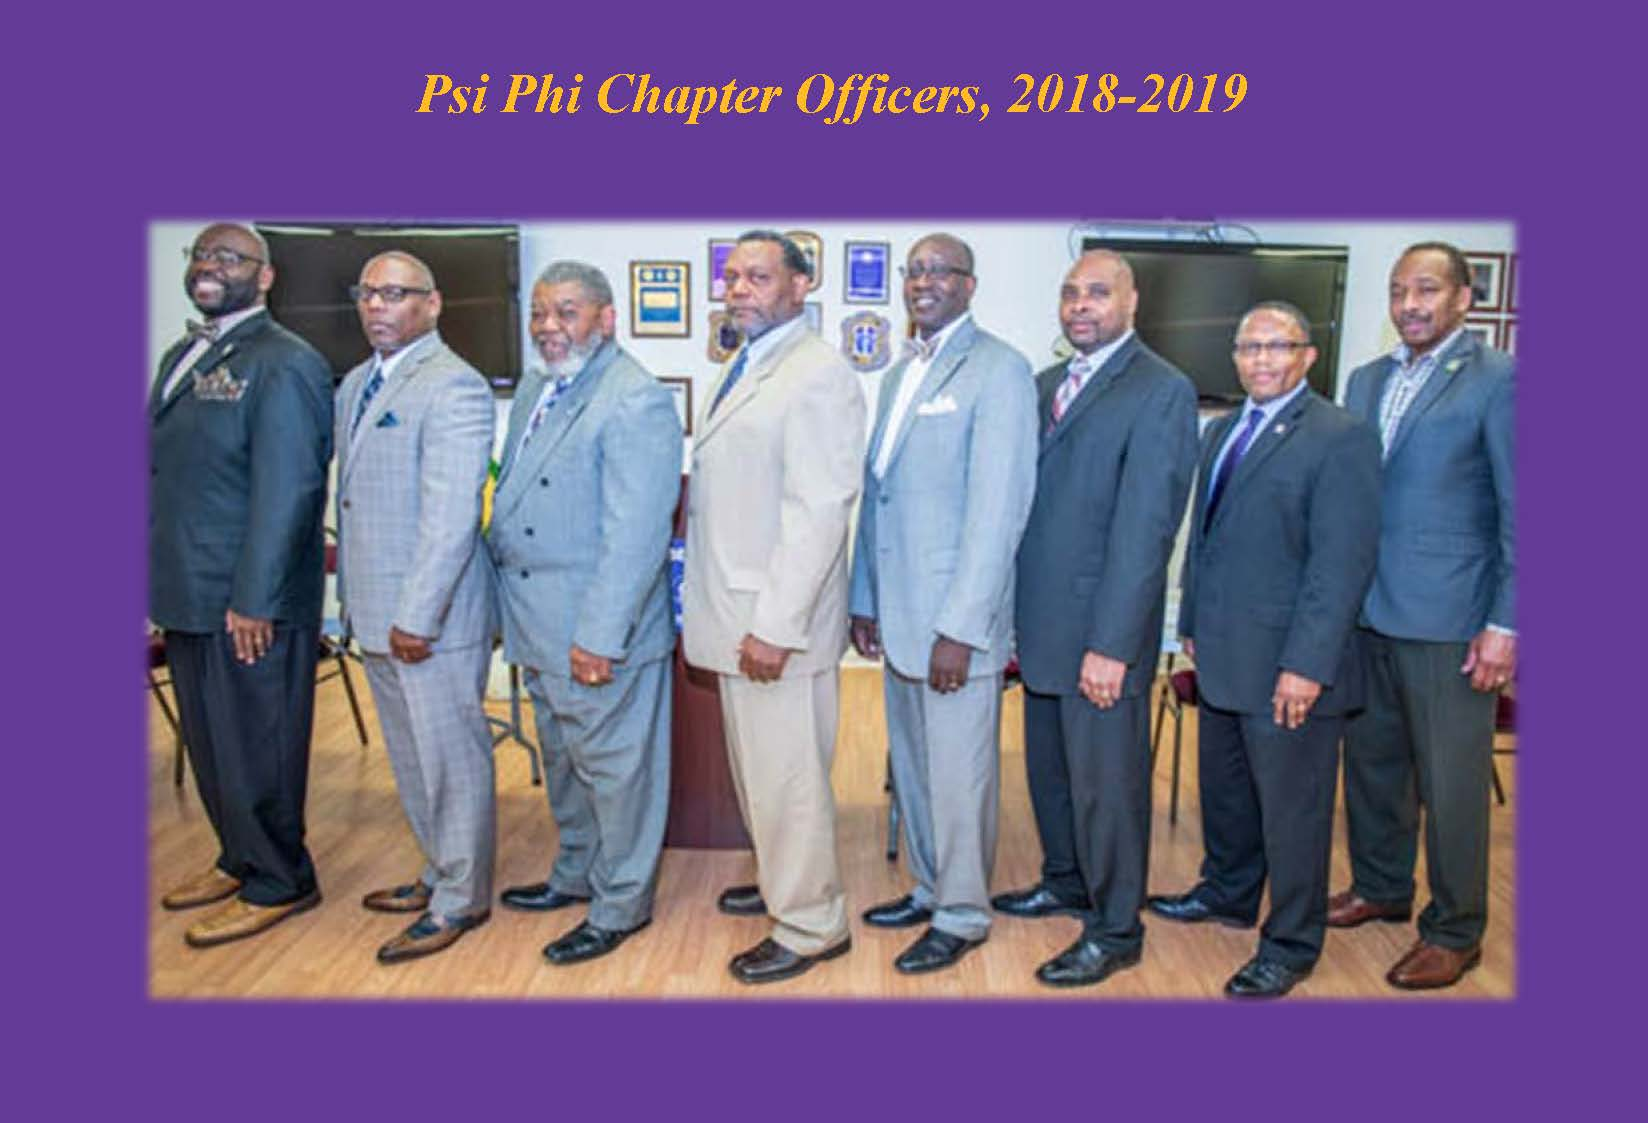 Chapter Officers 2018-2019